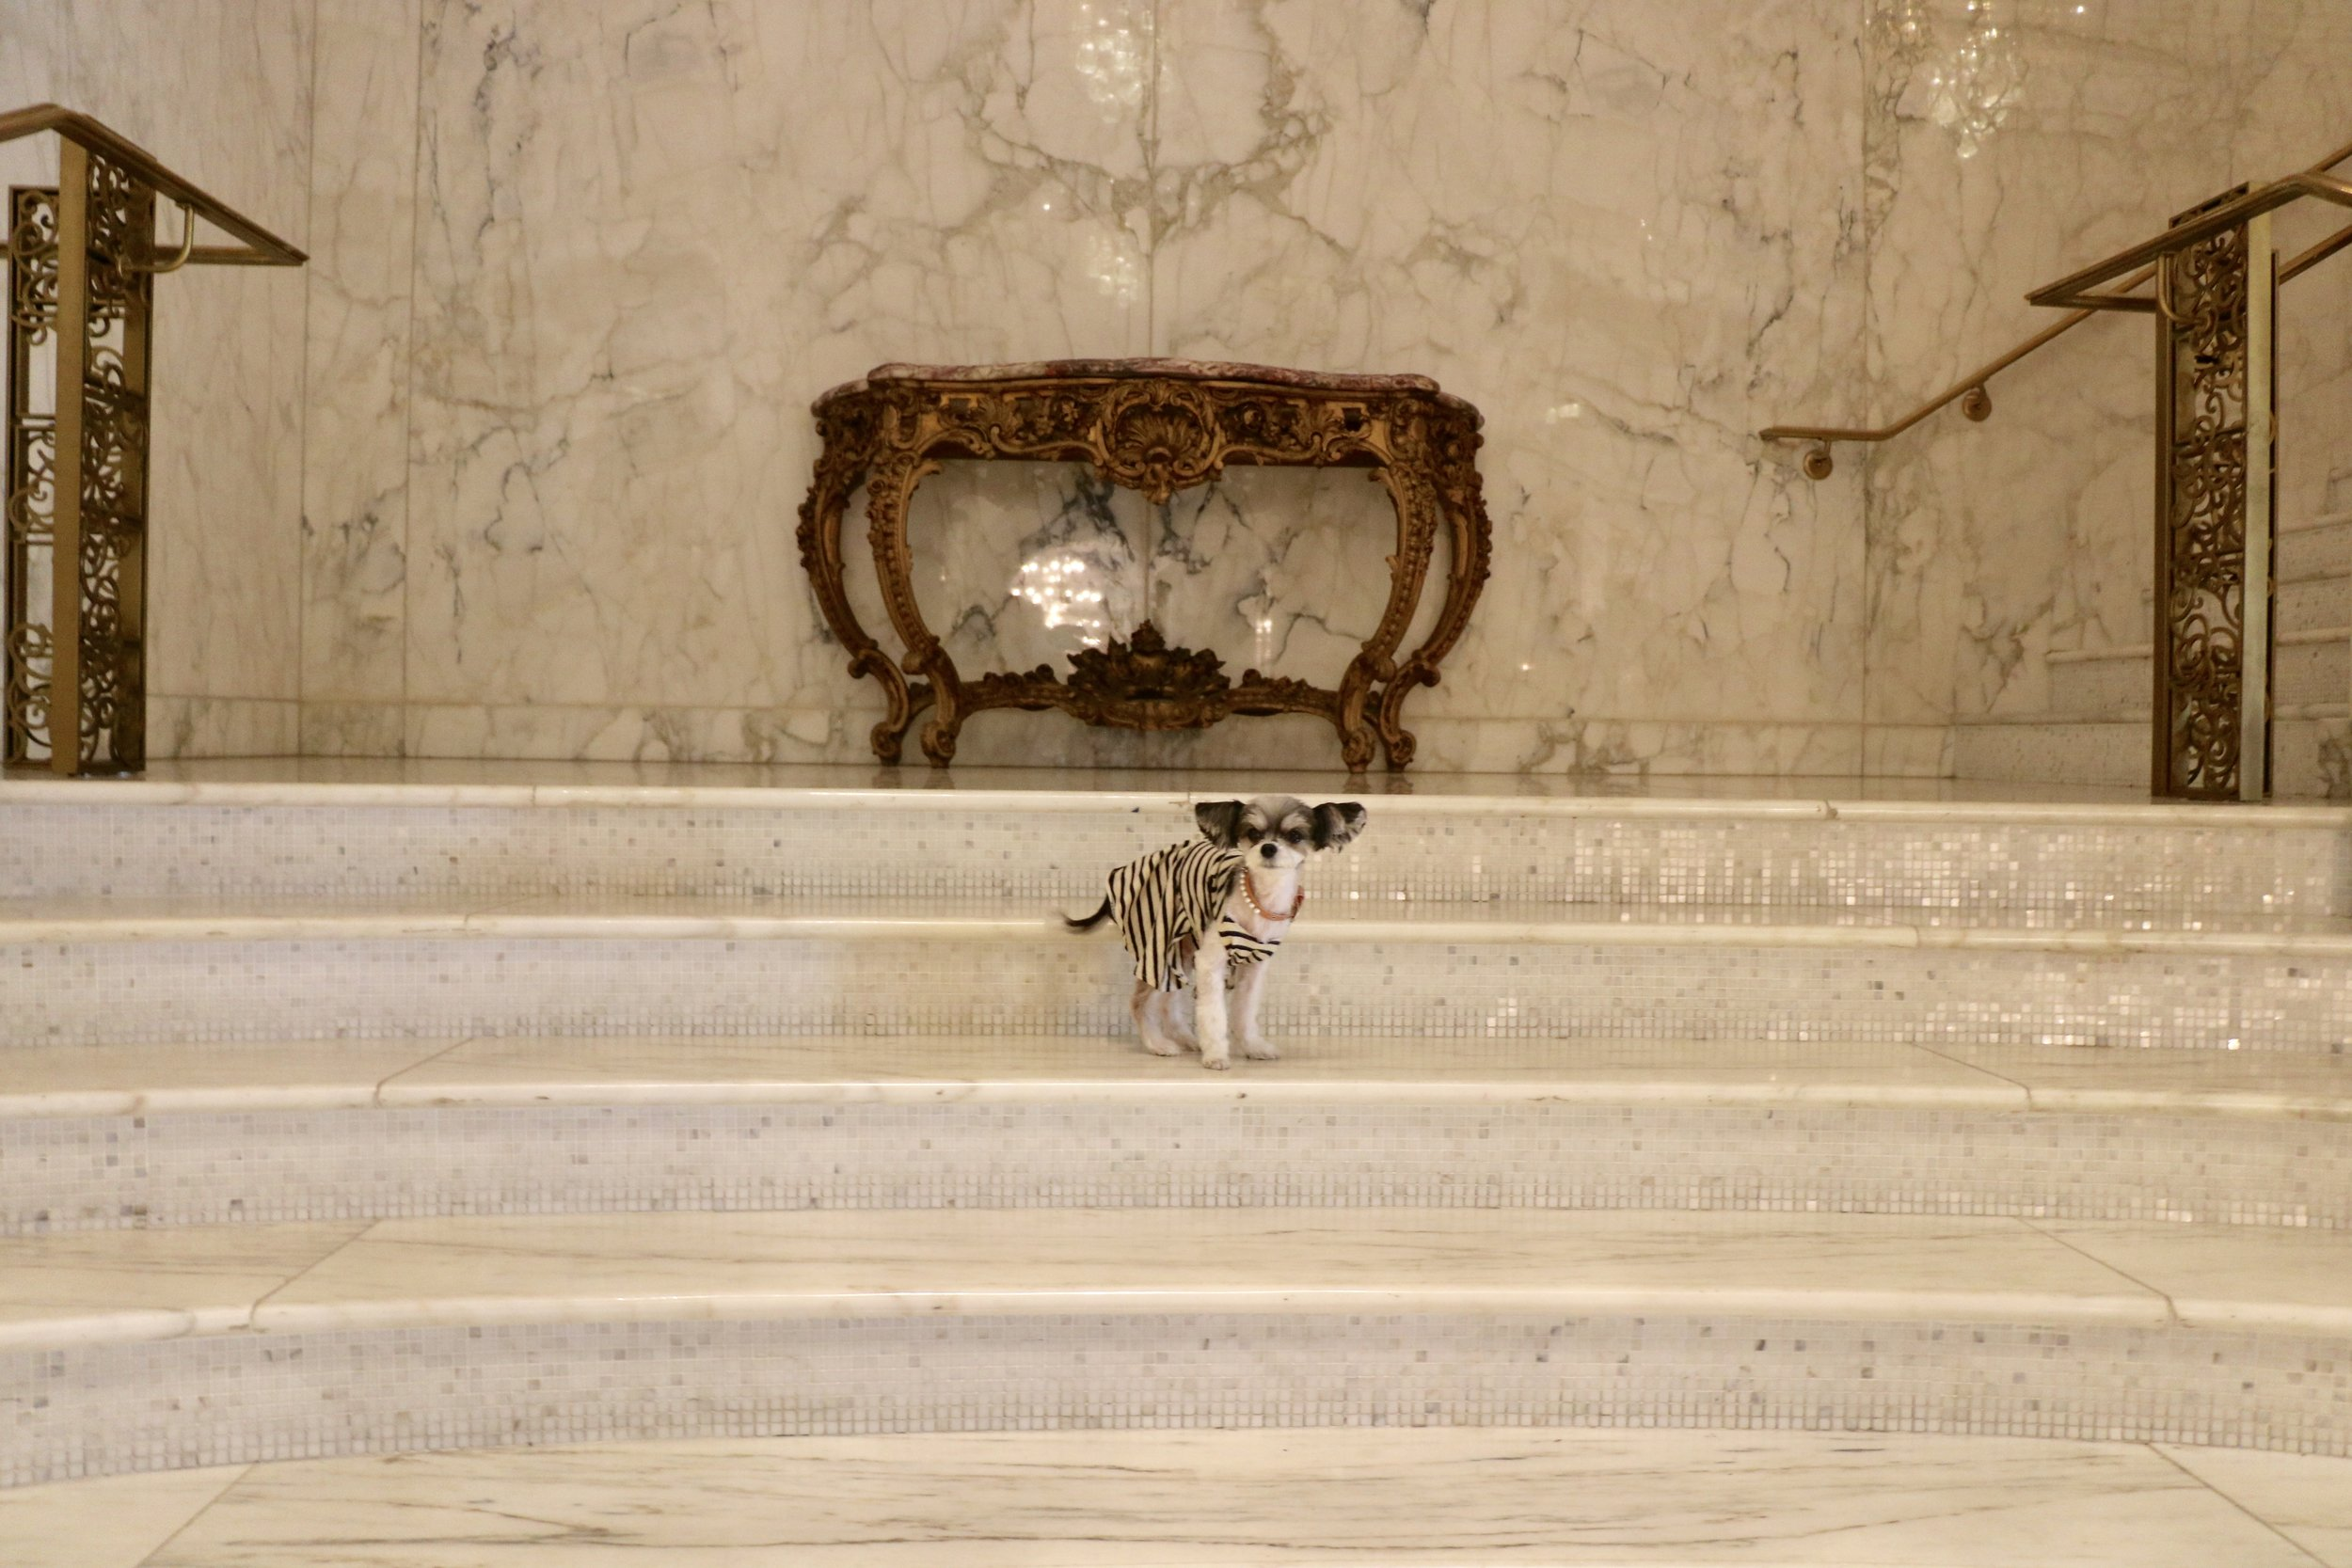 Tinkerblle posing on the marble staircase.